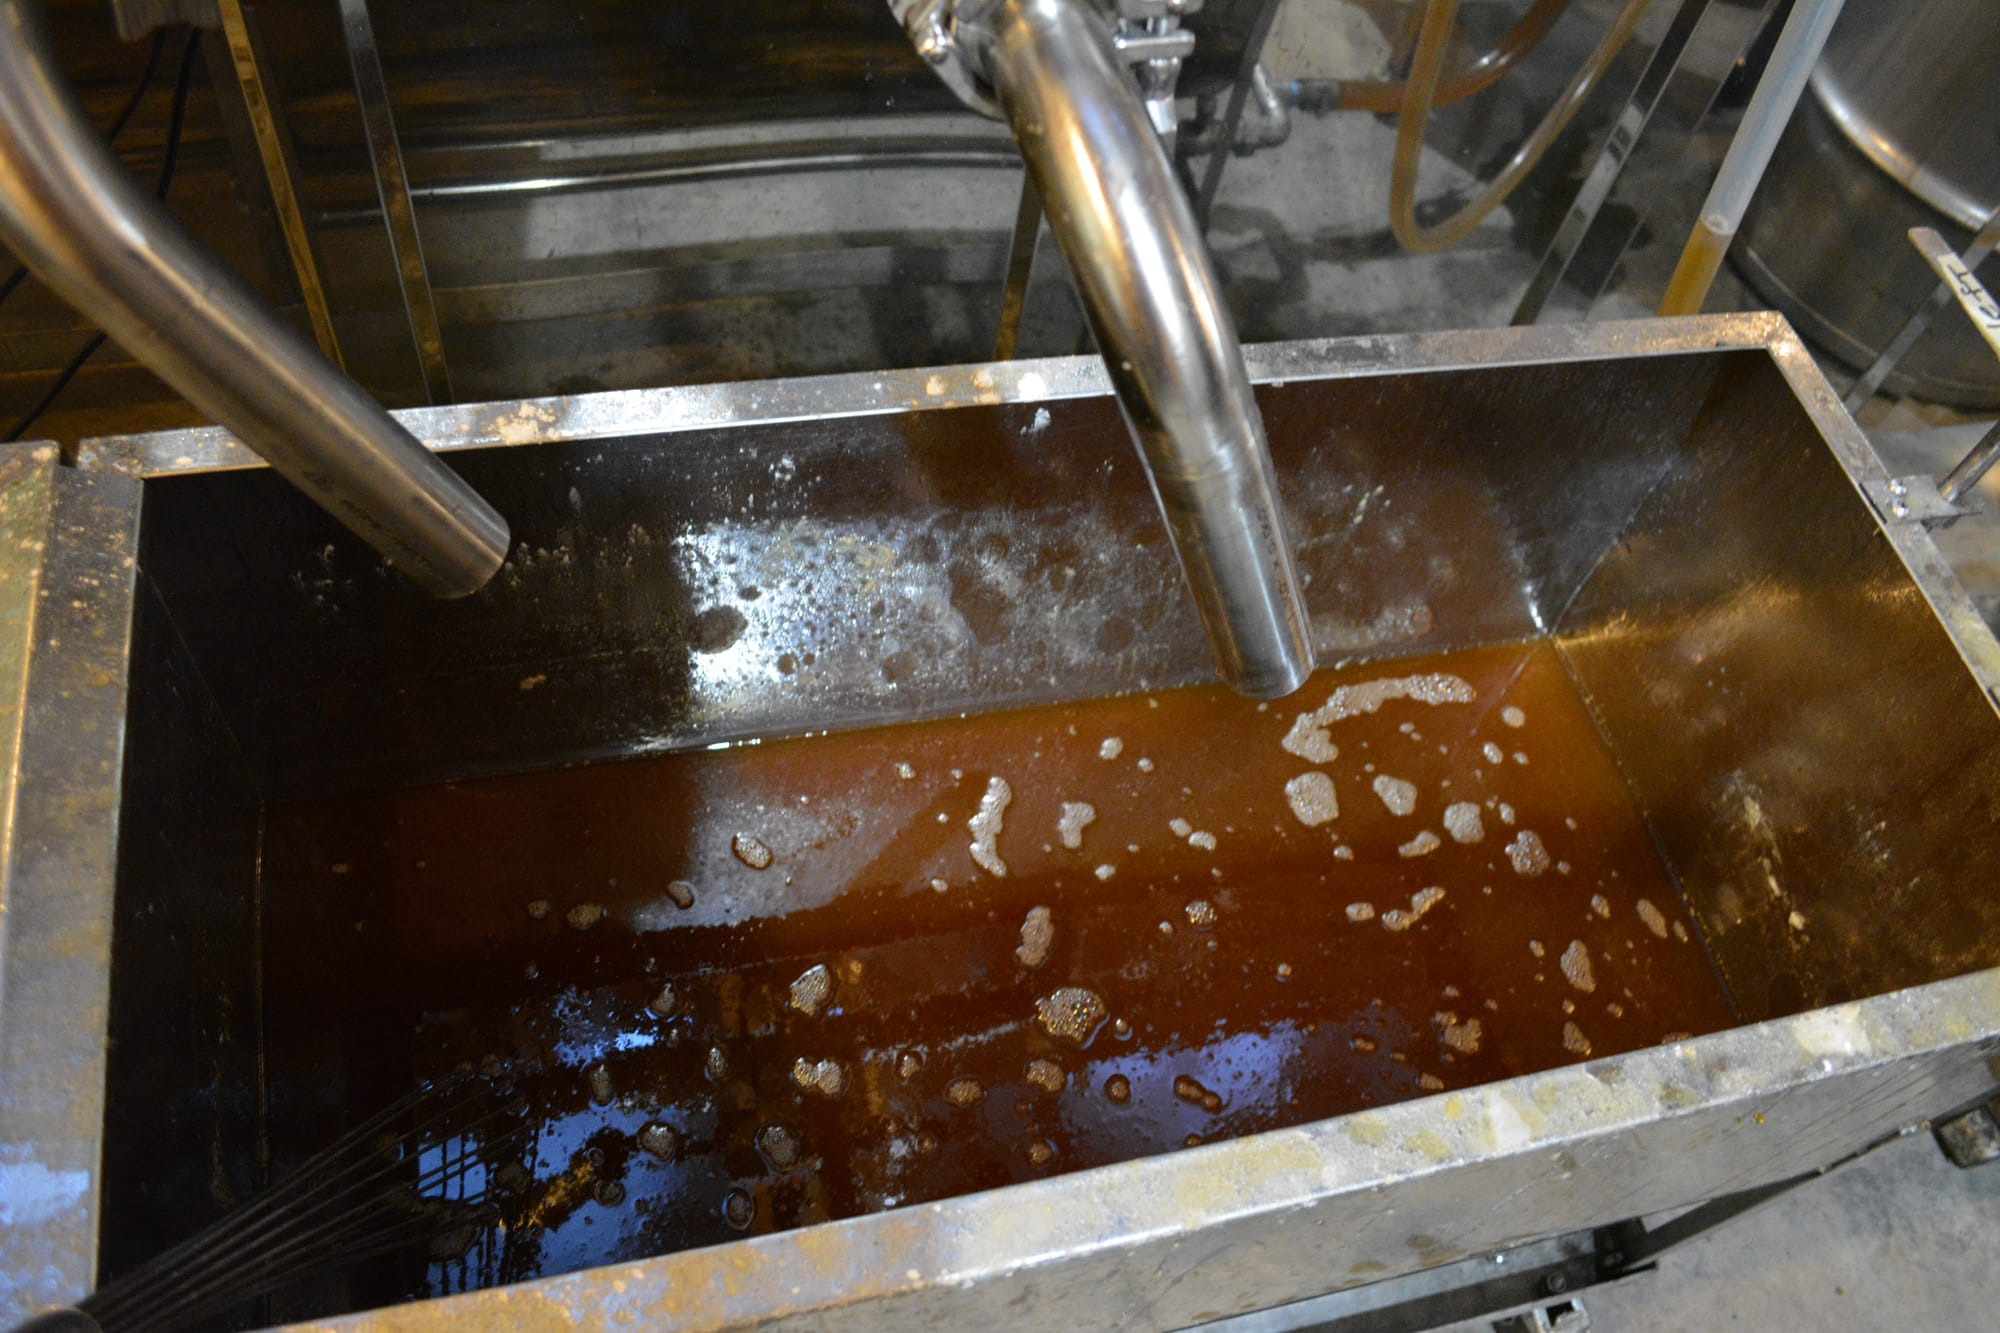 The piping hot syrup then flows out a spout and into a metal trough.